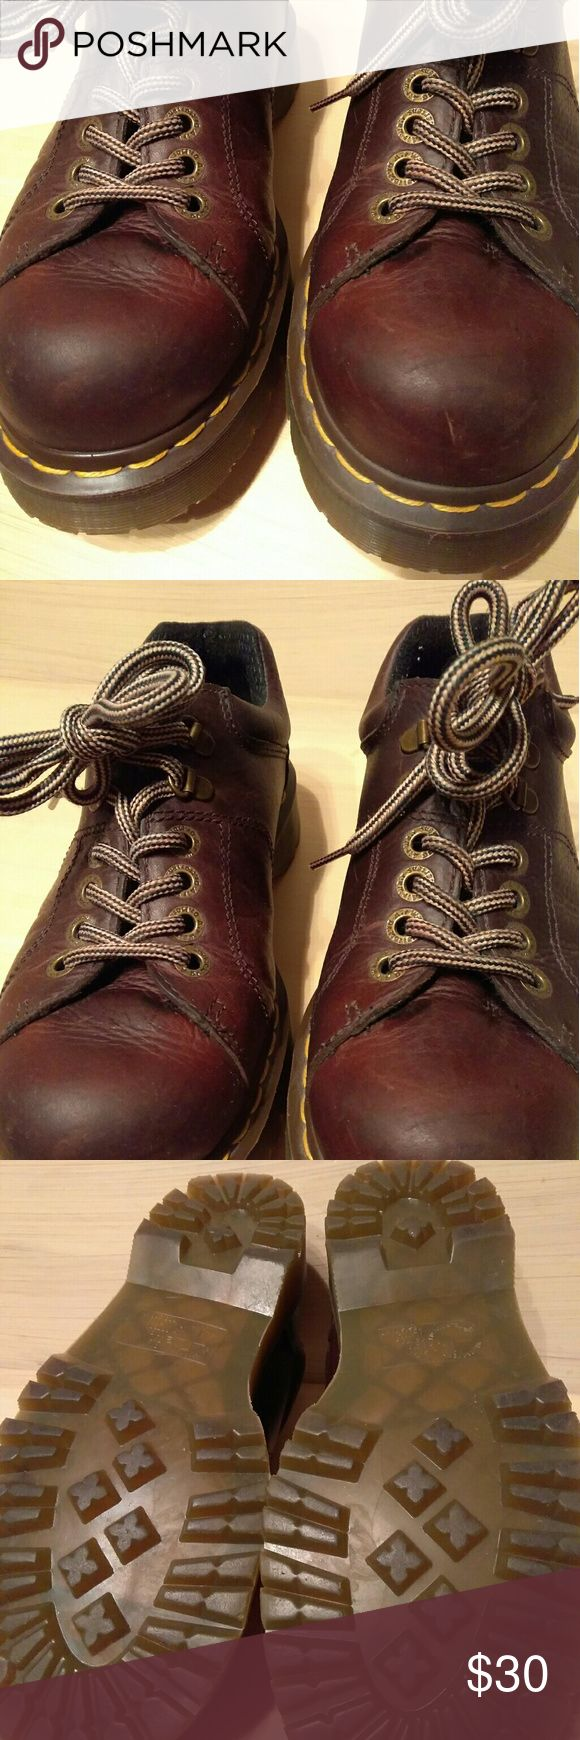 Distressed Oxford Shoes Mens